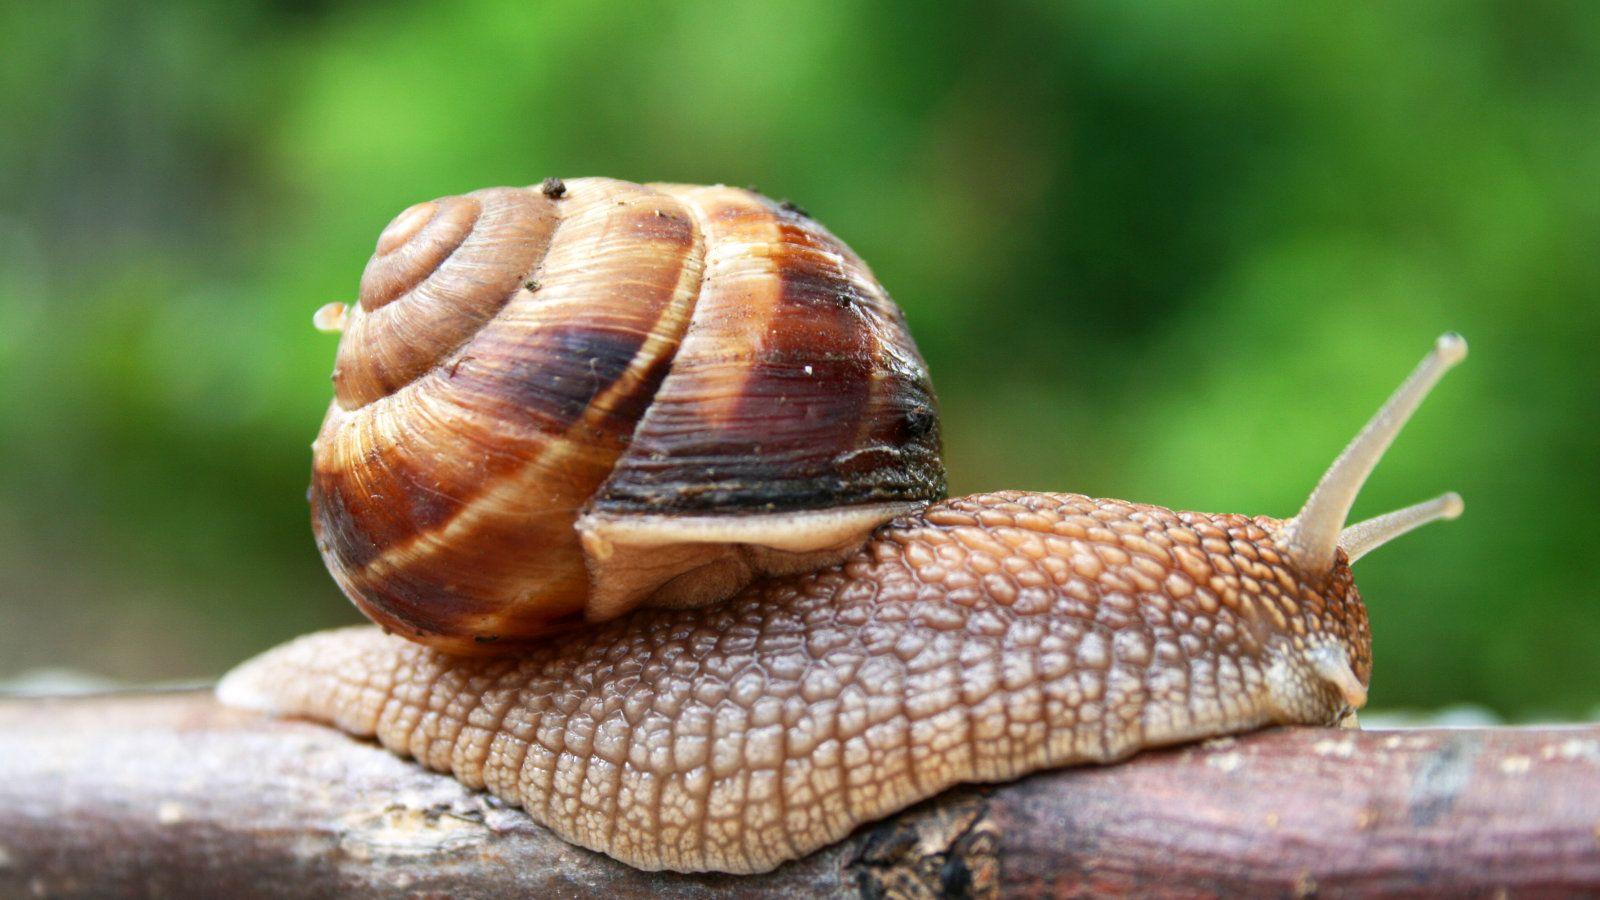 Snail wallpapers, CGI, HQ Snail pictures